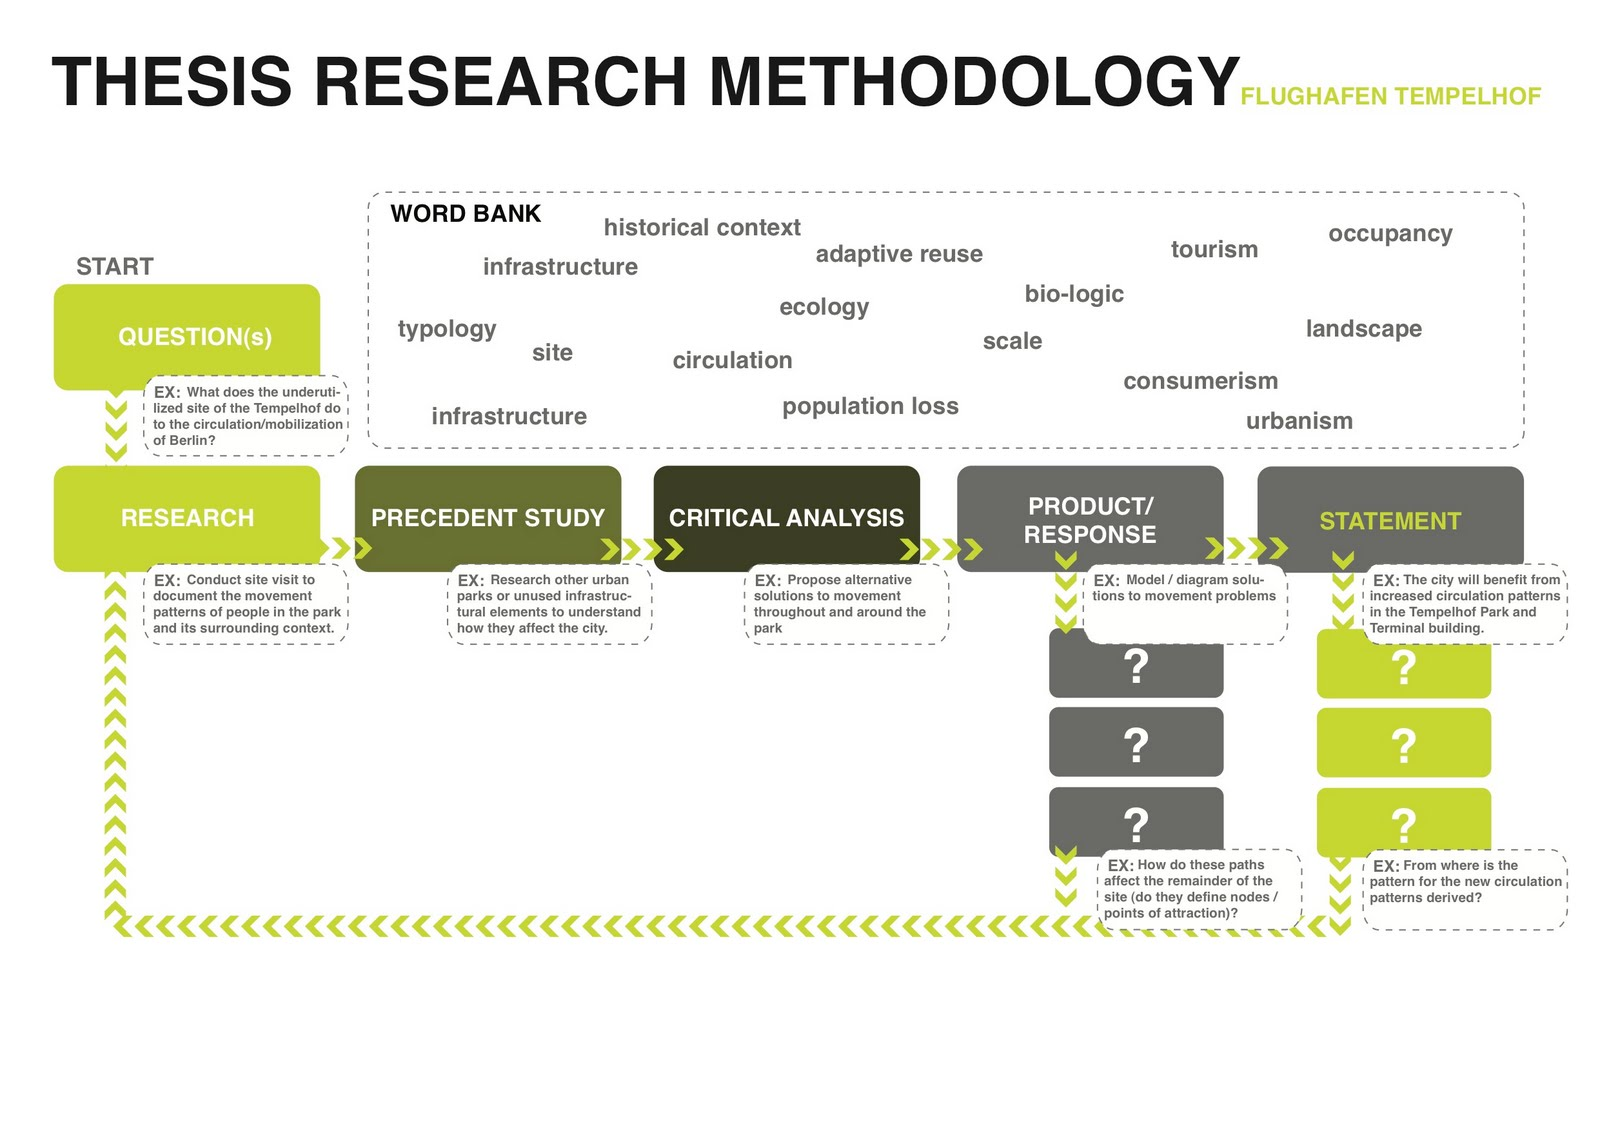 methodology section of thesis